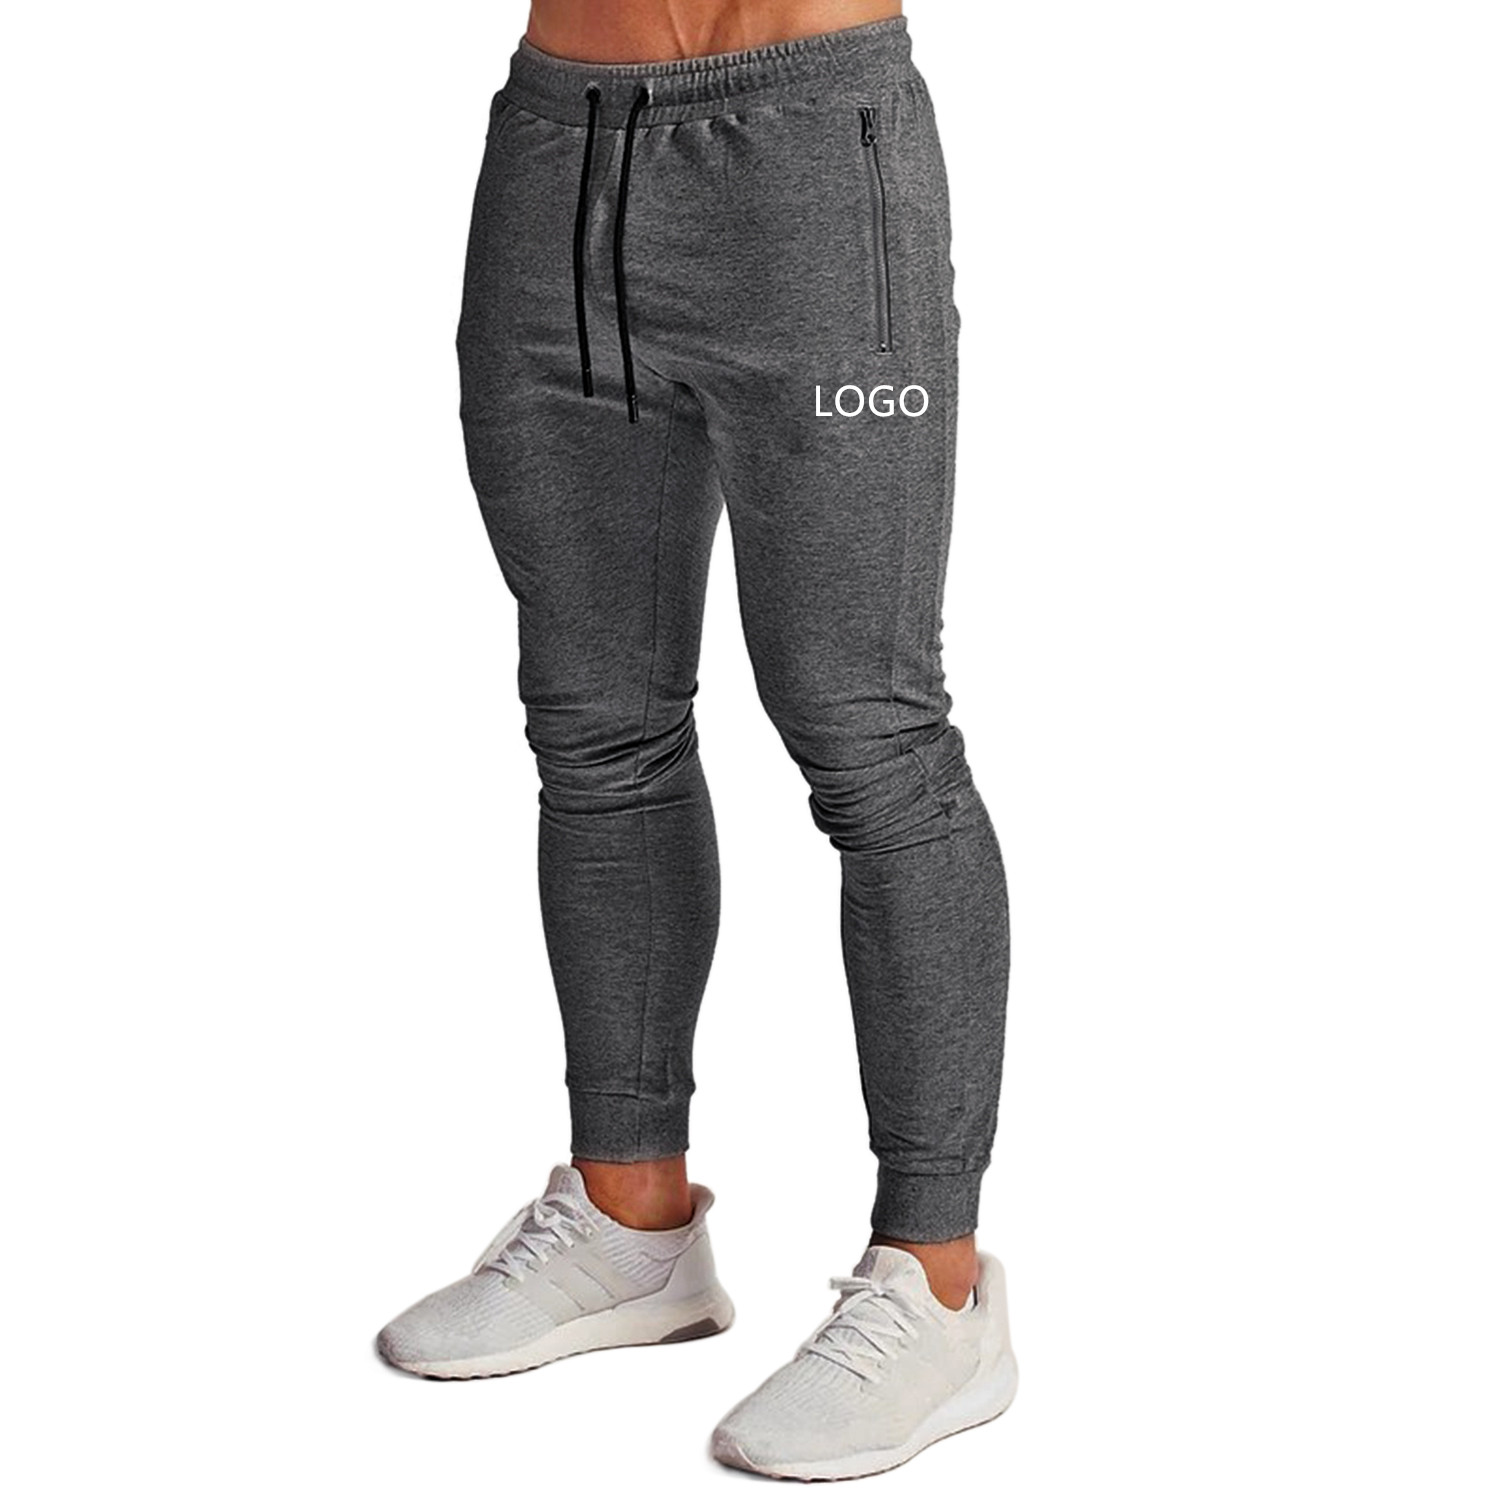 Slim Fit Joggers Tapered Sweatpants For Gym Casual Zipper Workout Running Athletic Men Stacked Joggers